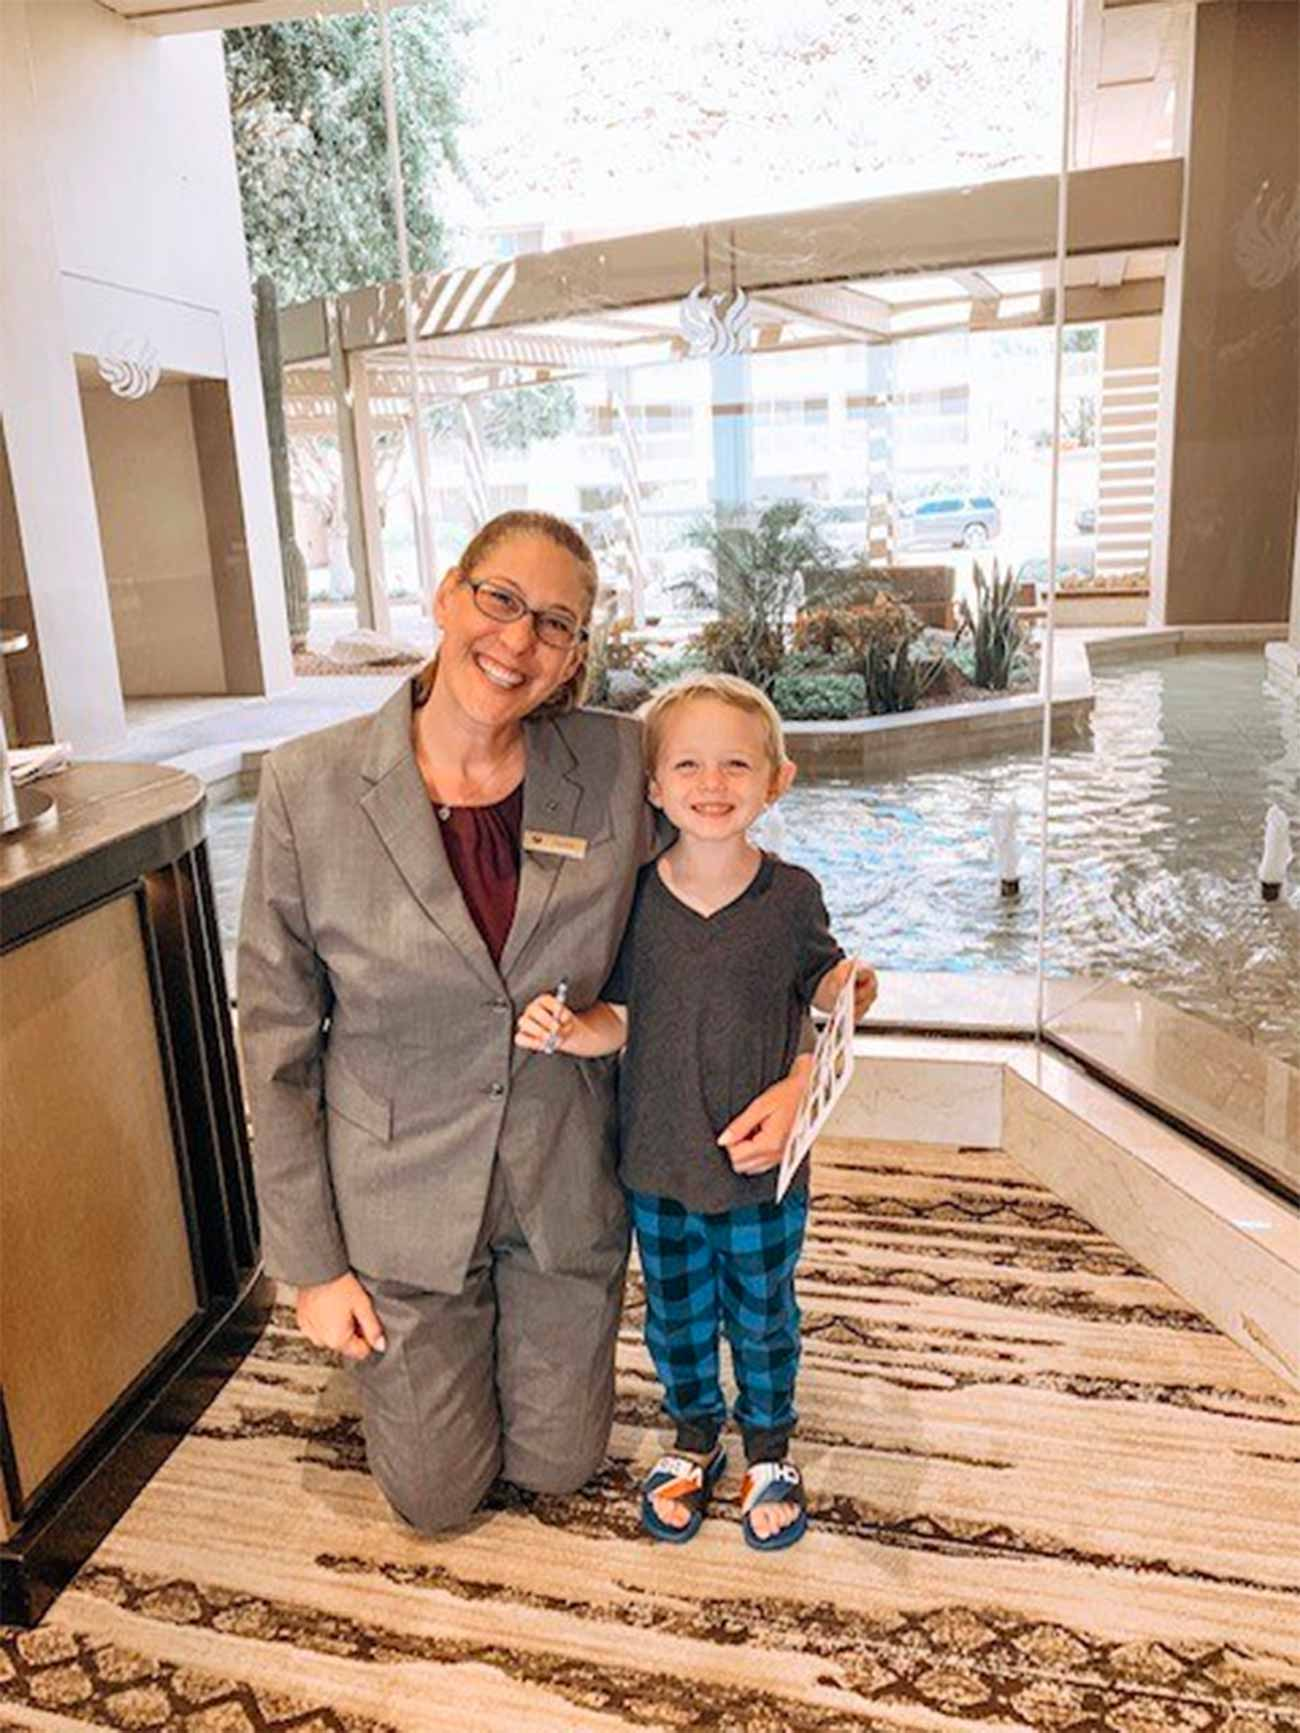 young boy smiles with hotel manager